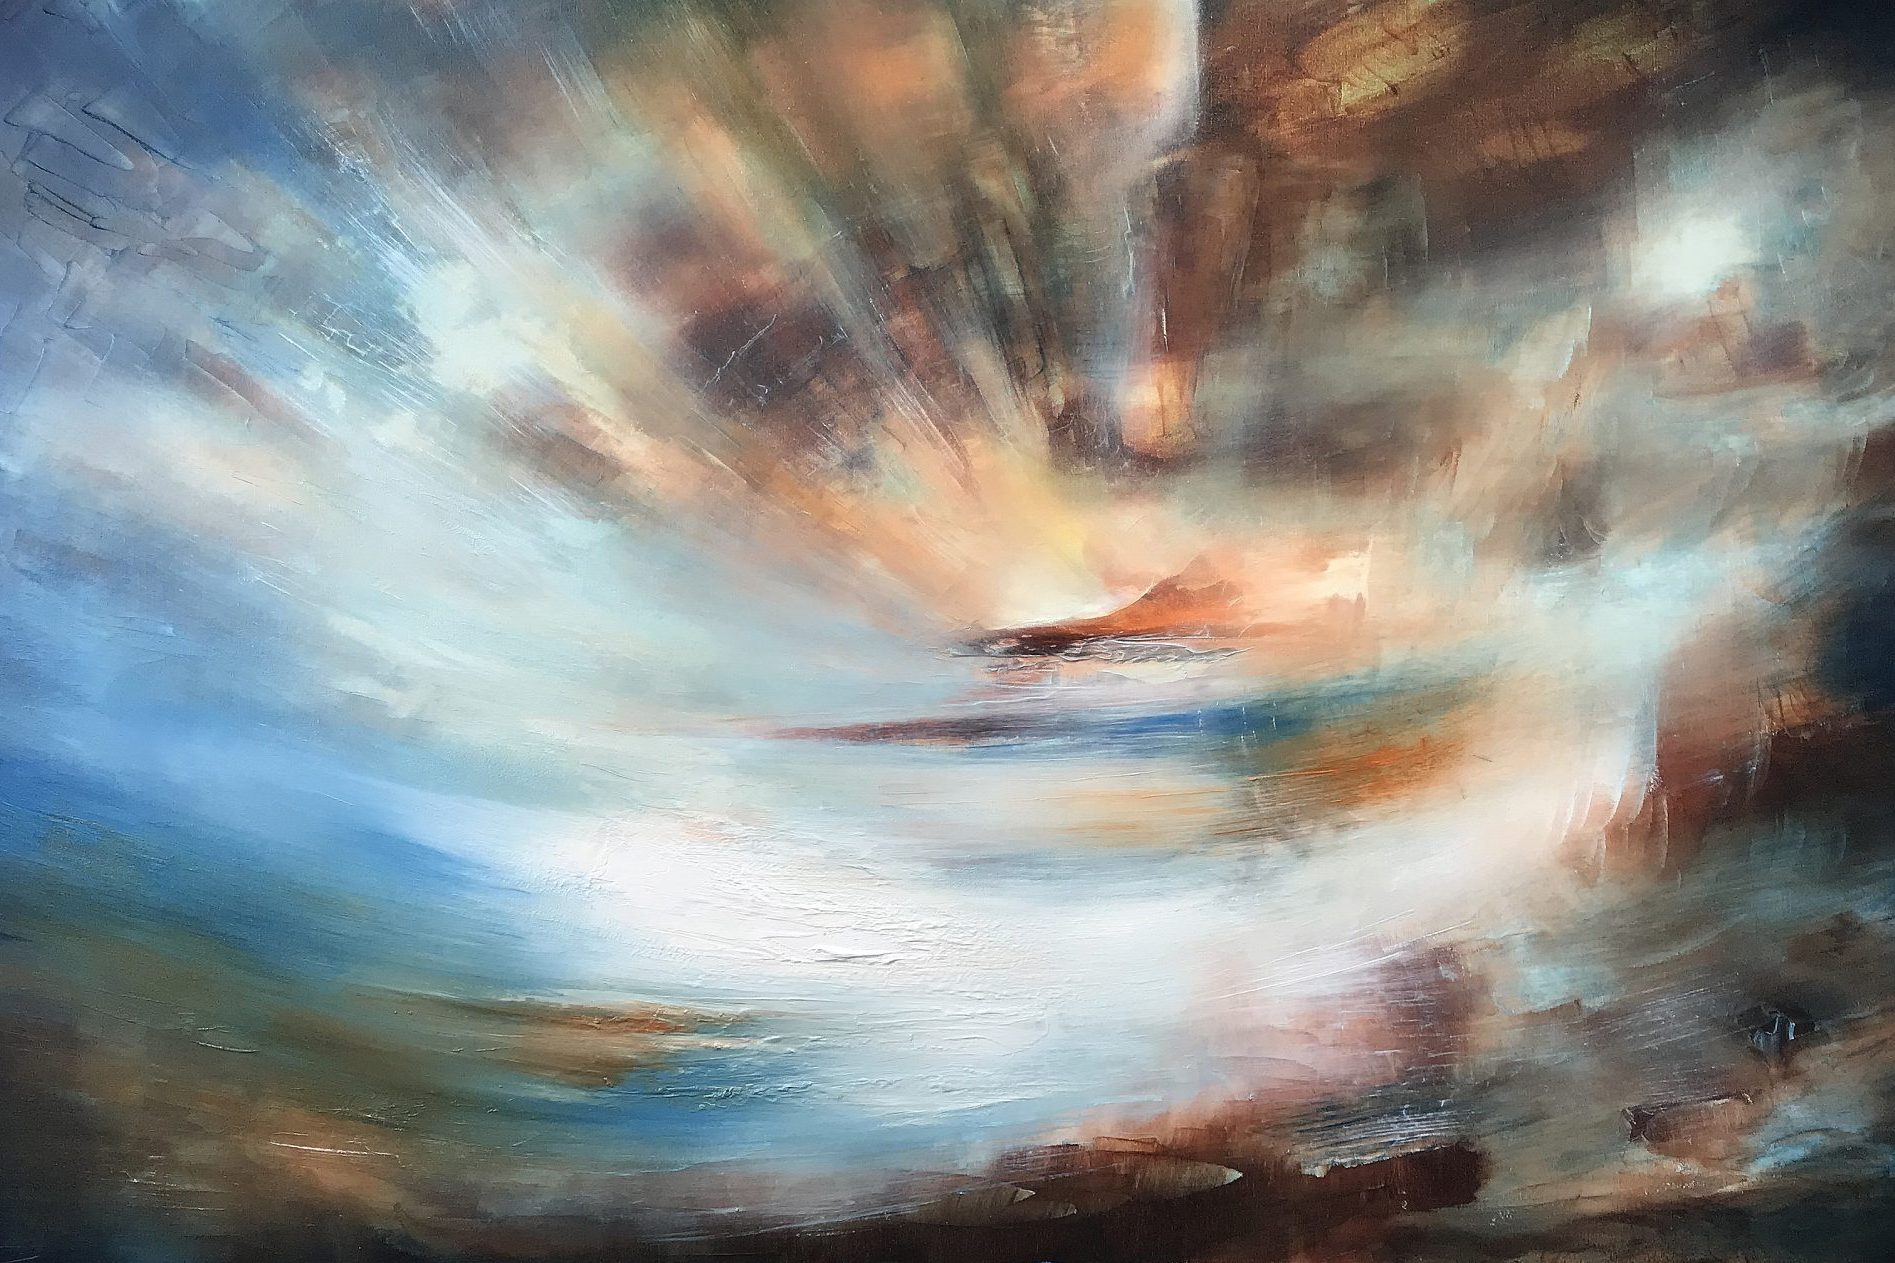 The World Beyond | Oil on canvas | 122 x 76 cm | 2020